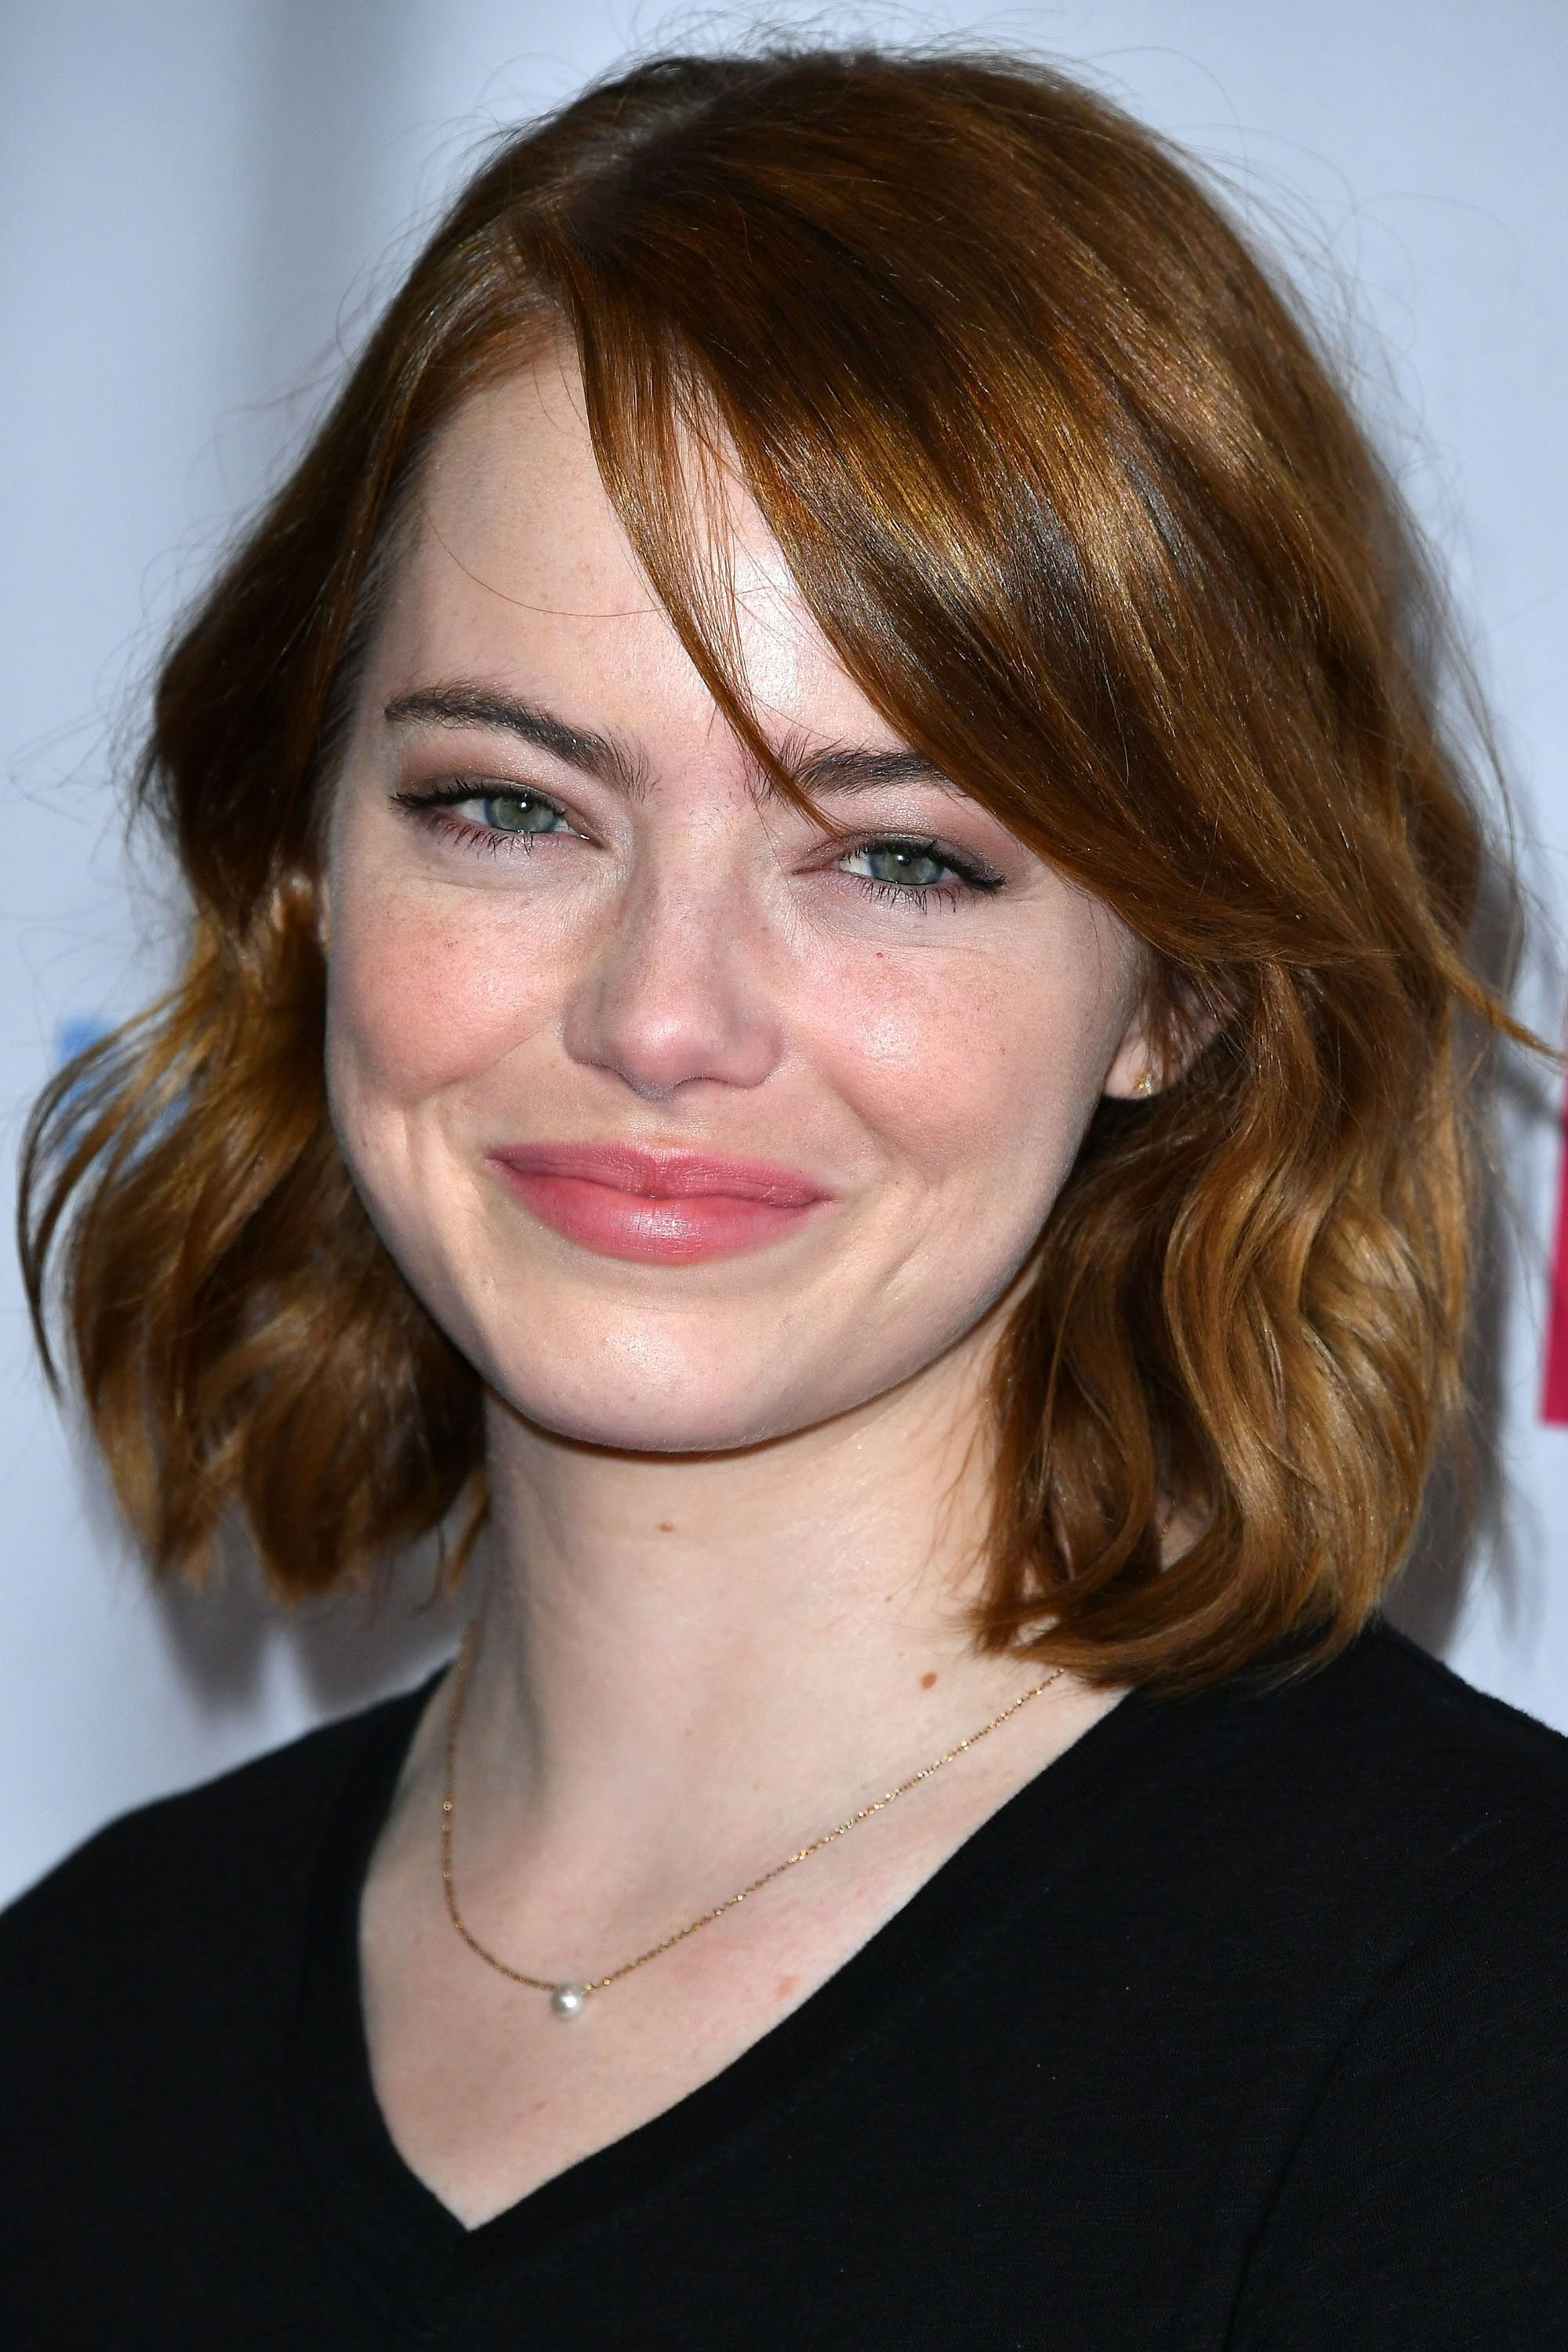 The Best How To Grow Out Your Hair Celebs Growing Out Short Hair Pictures